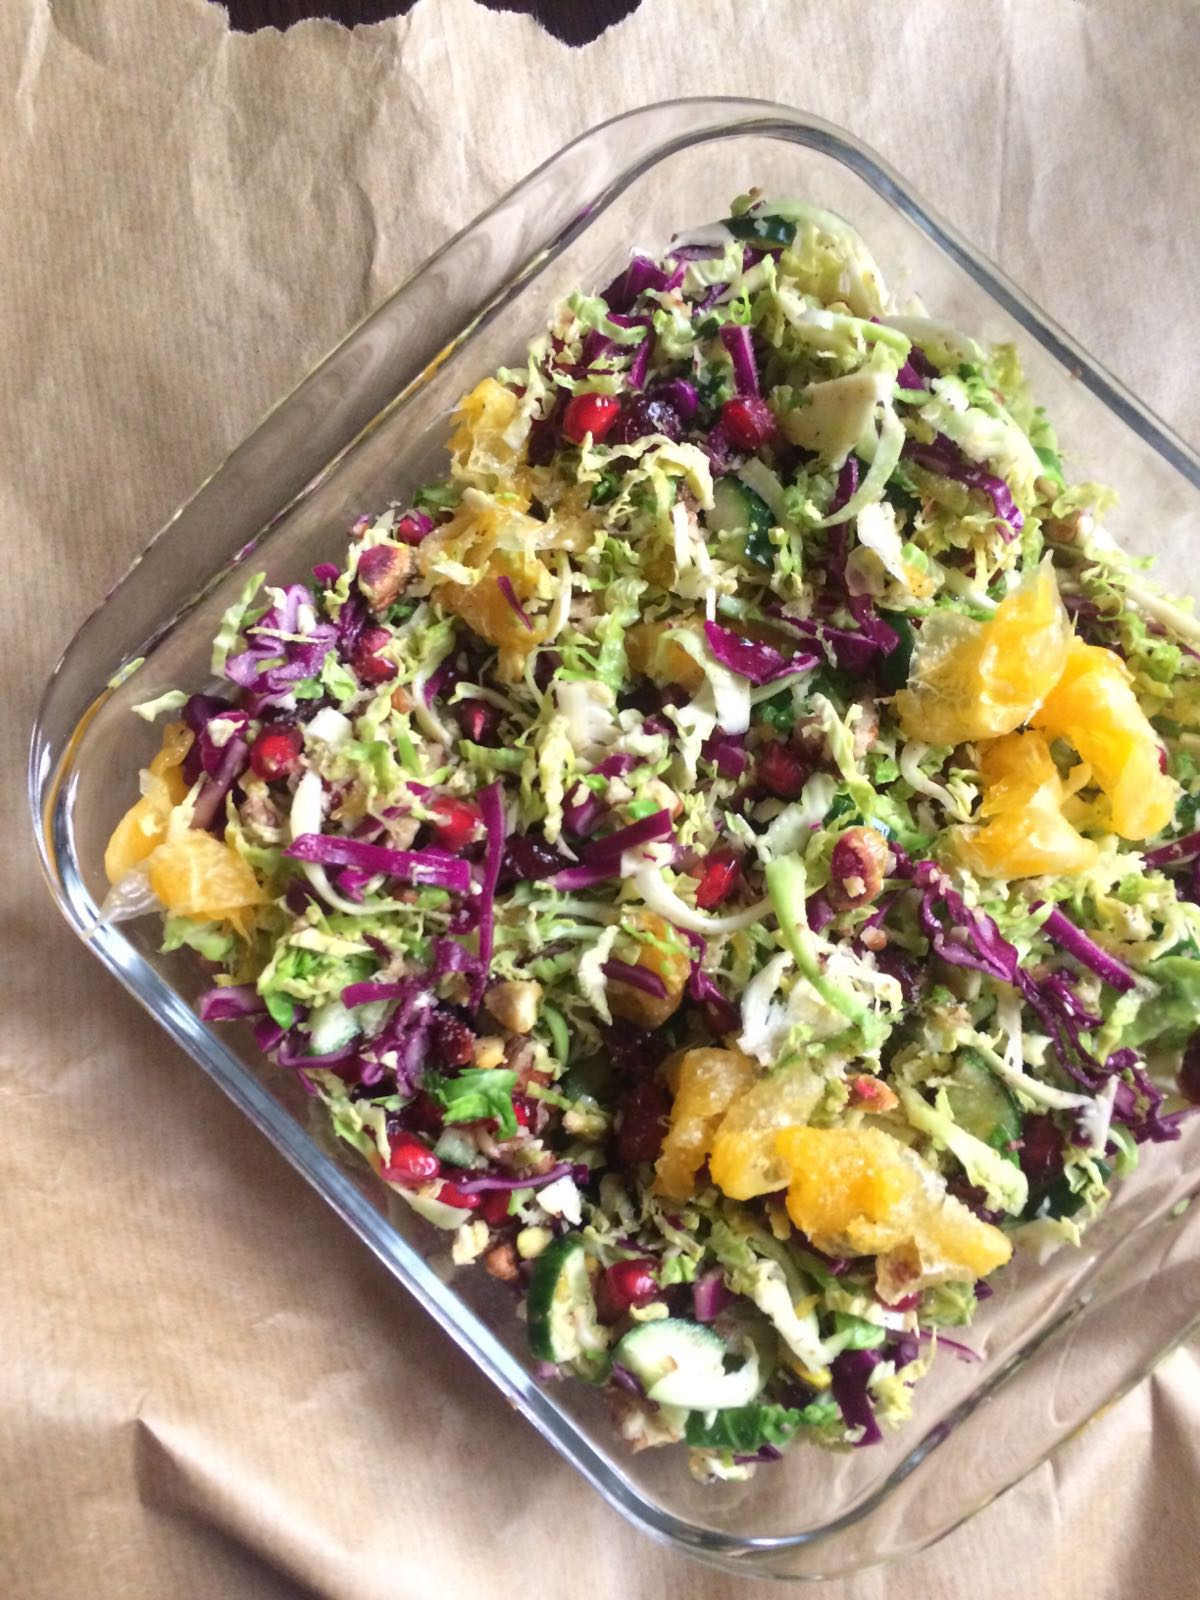 Sunshine Salad with Brussels Sprouts